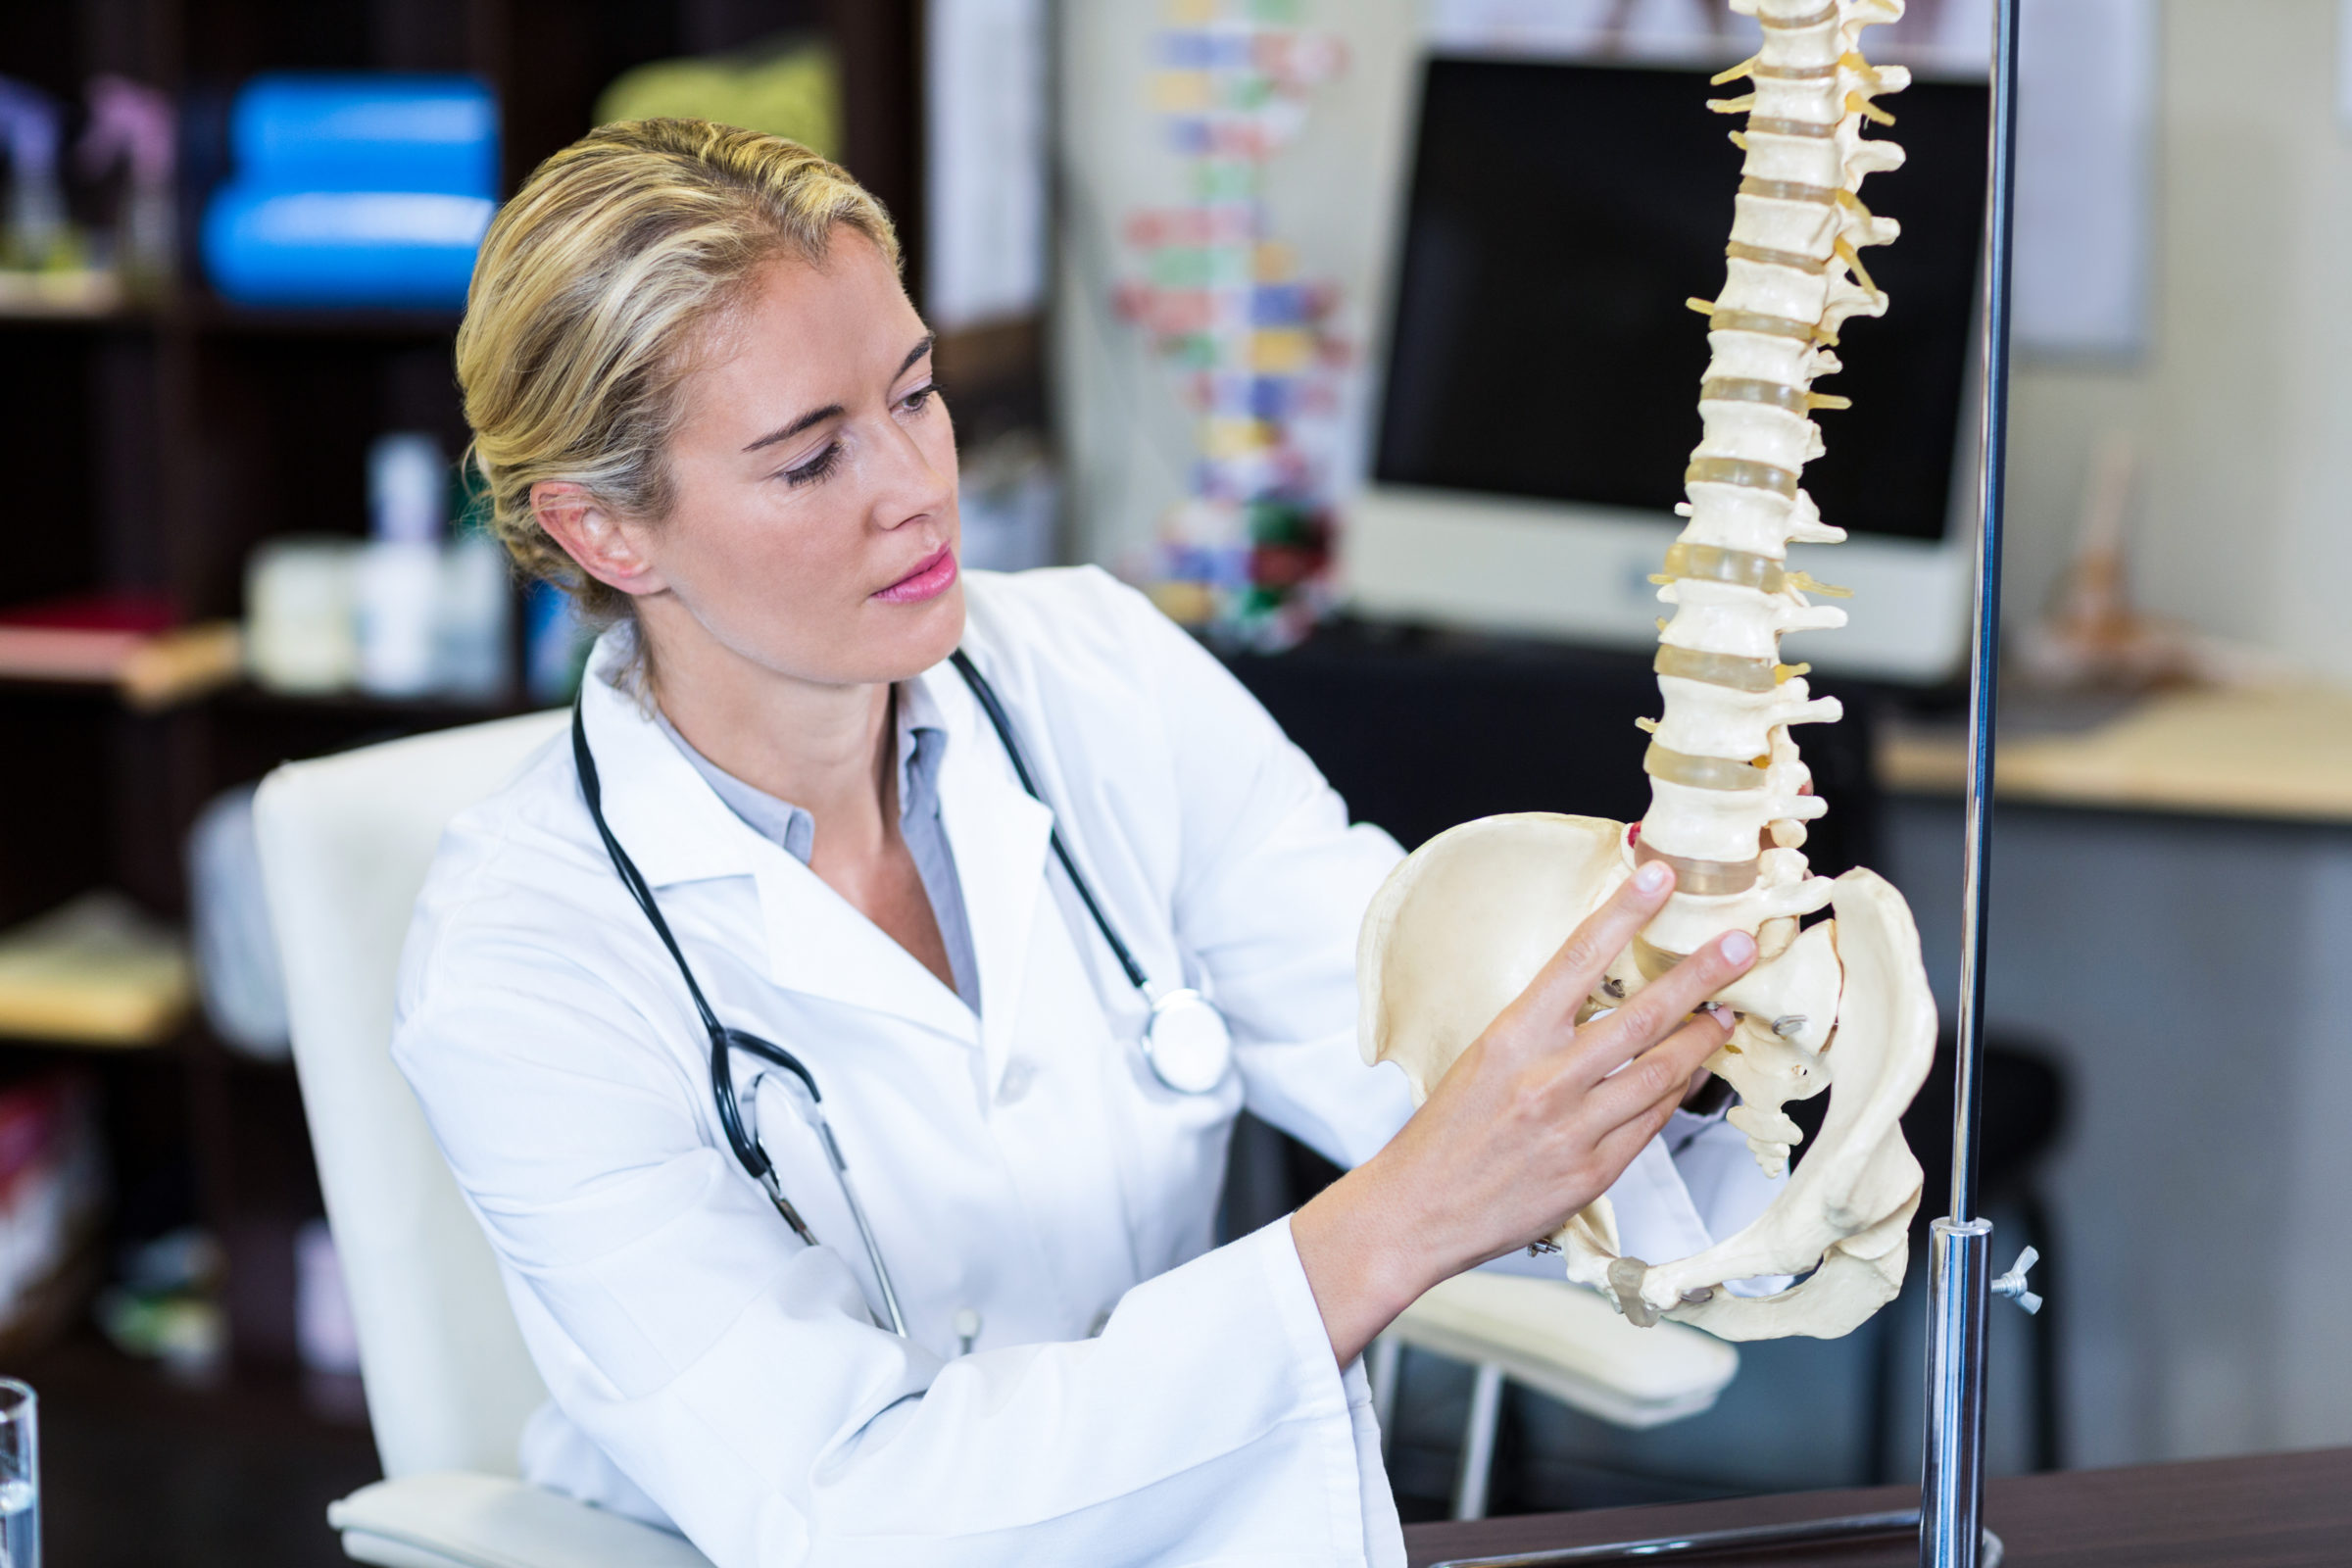 physiotherapist looking at spine model XBC4QUQ